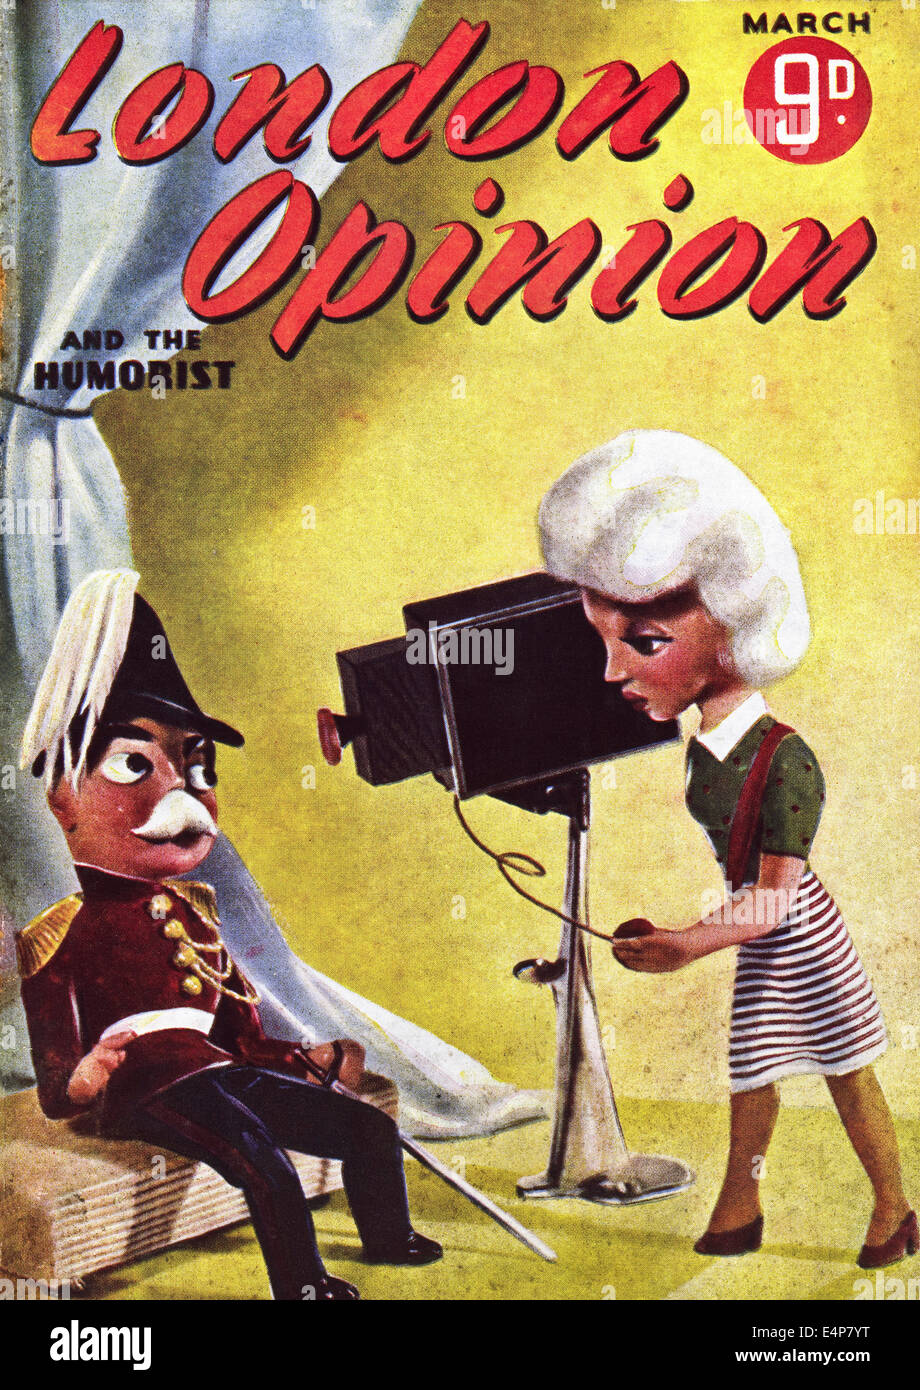 Cover of LONDON OPINION AND THE HUMORIST 1940s British magazine dated March 1942 - Stock Image